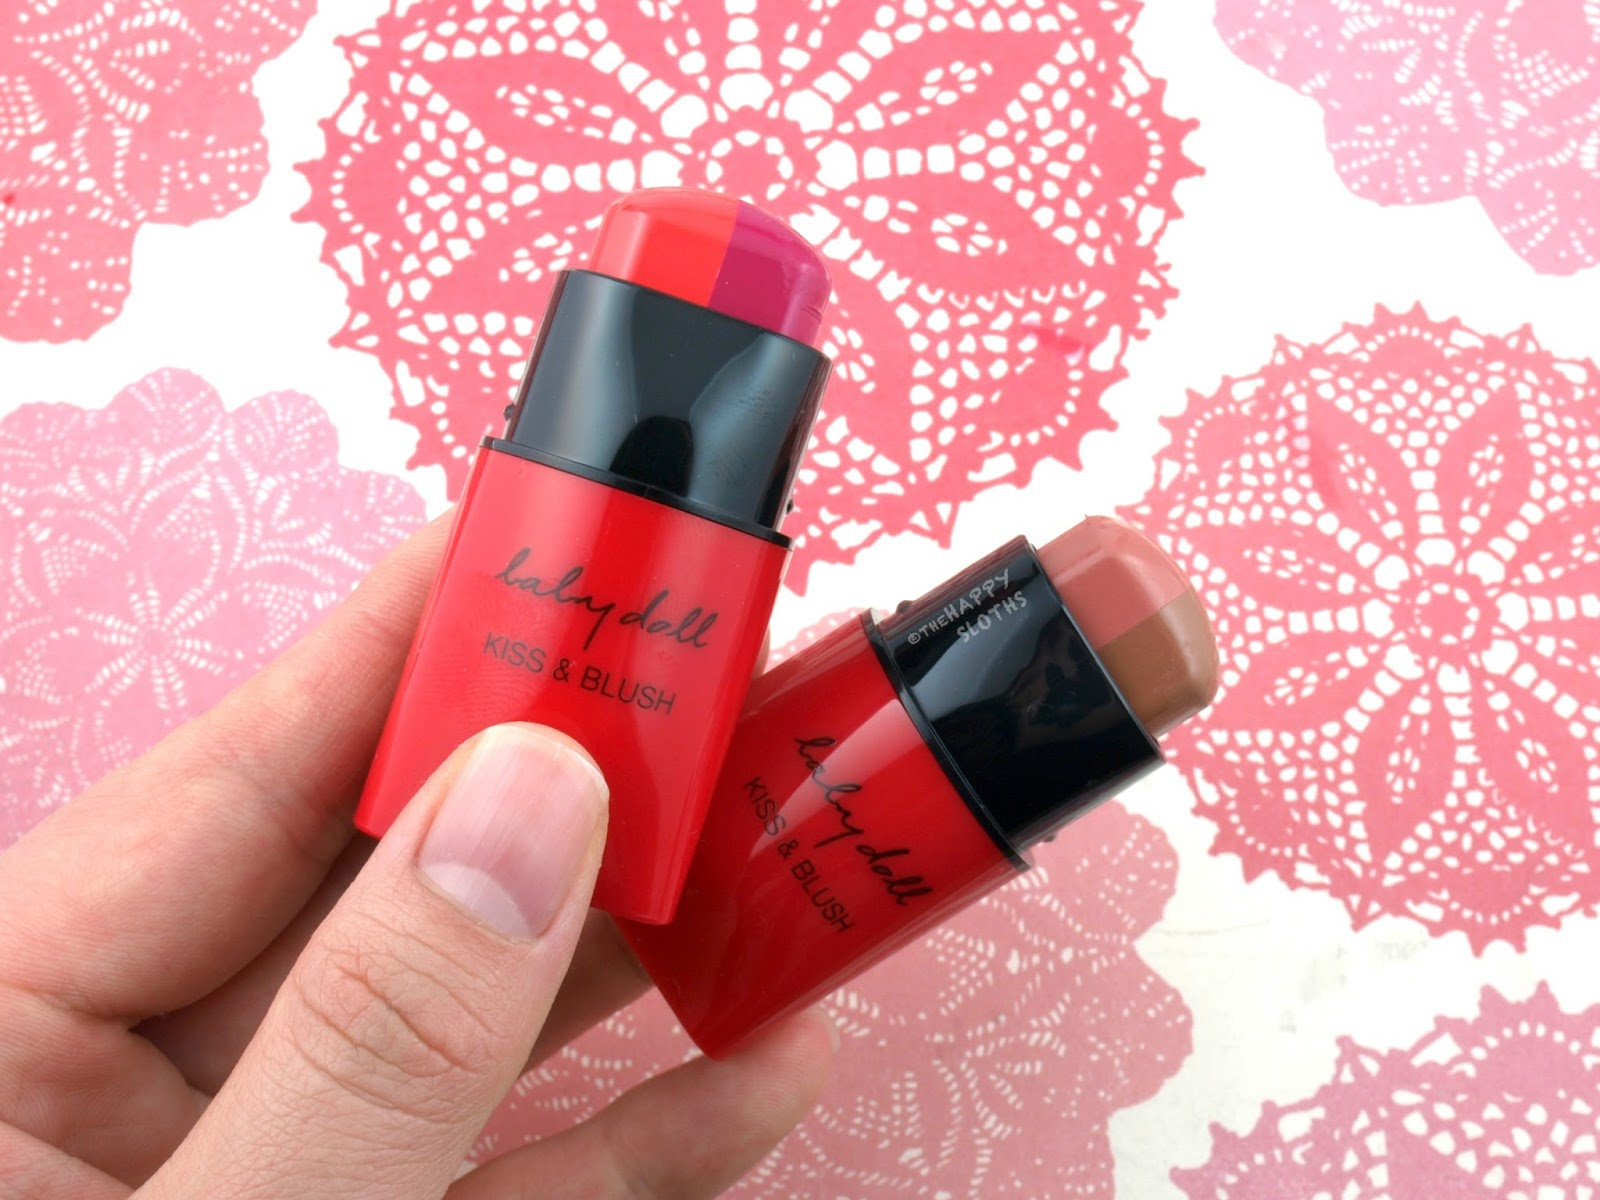 Yves Saint Laurent Baby Doll Kiss & Blush Duo Stick: Review and Swatches